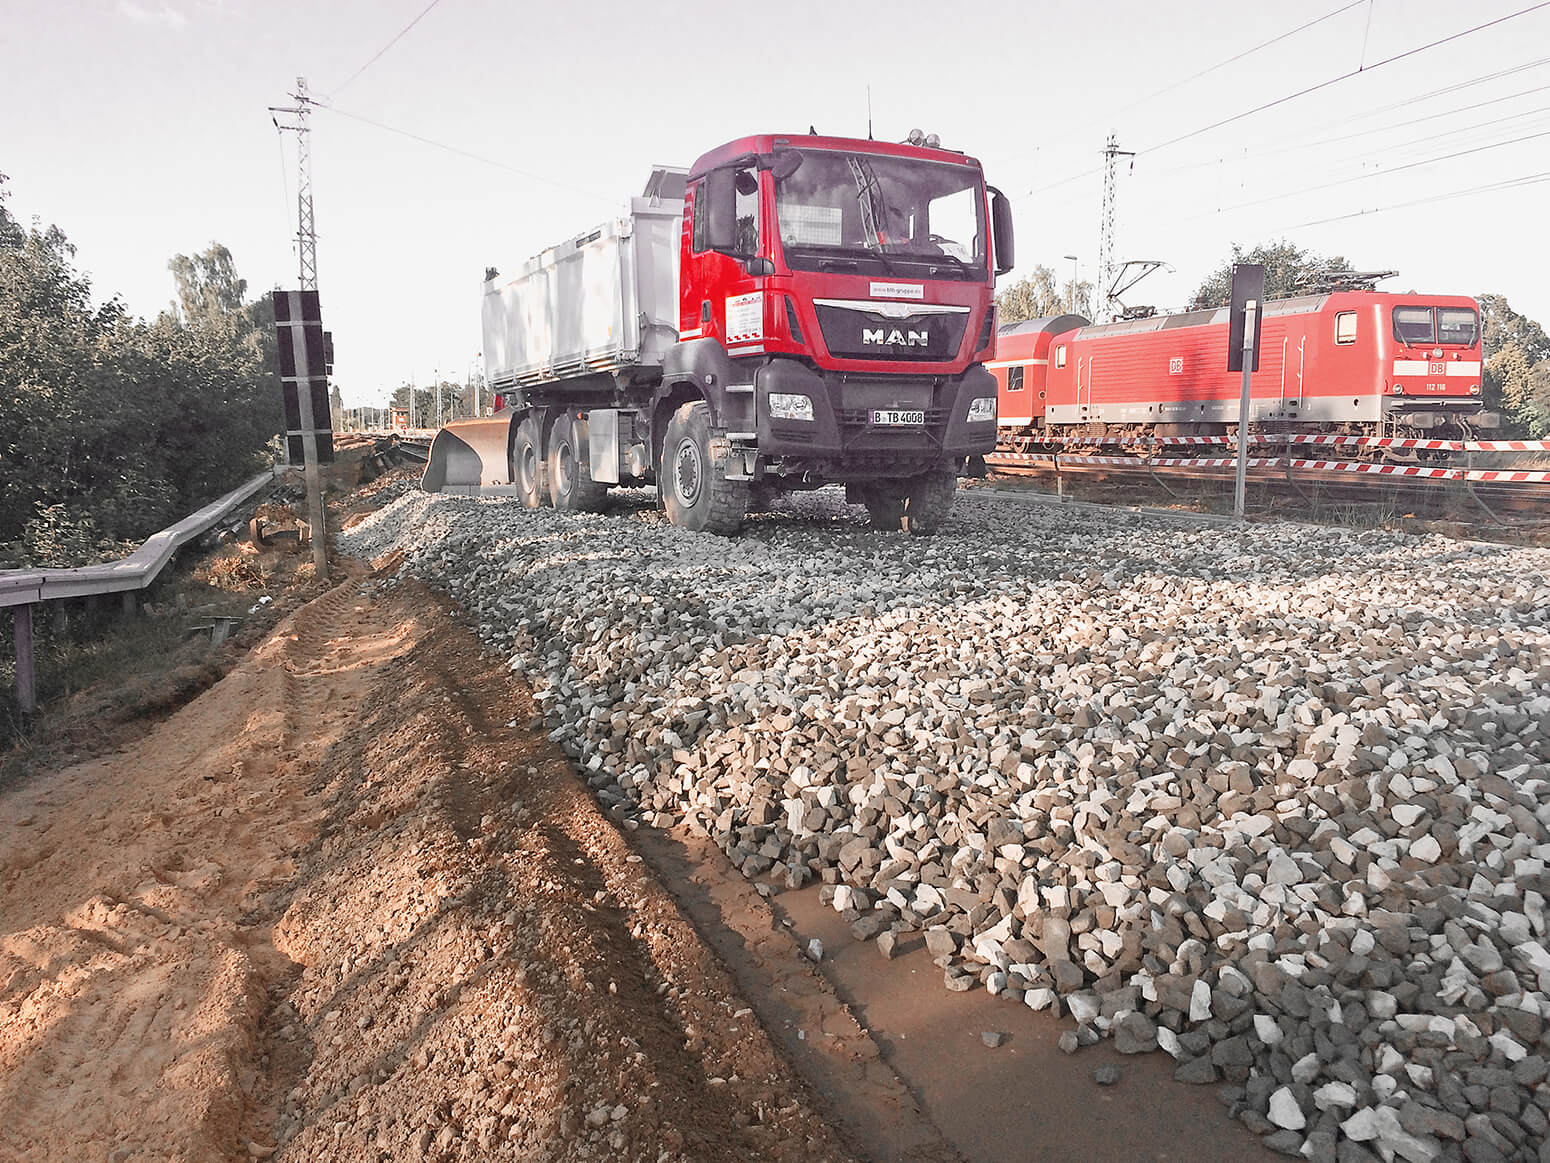 A BTB dumper truck on a freshly prepared gravel bed with a DB S-Bahn (city train) and railway tracks in the background